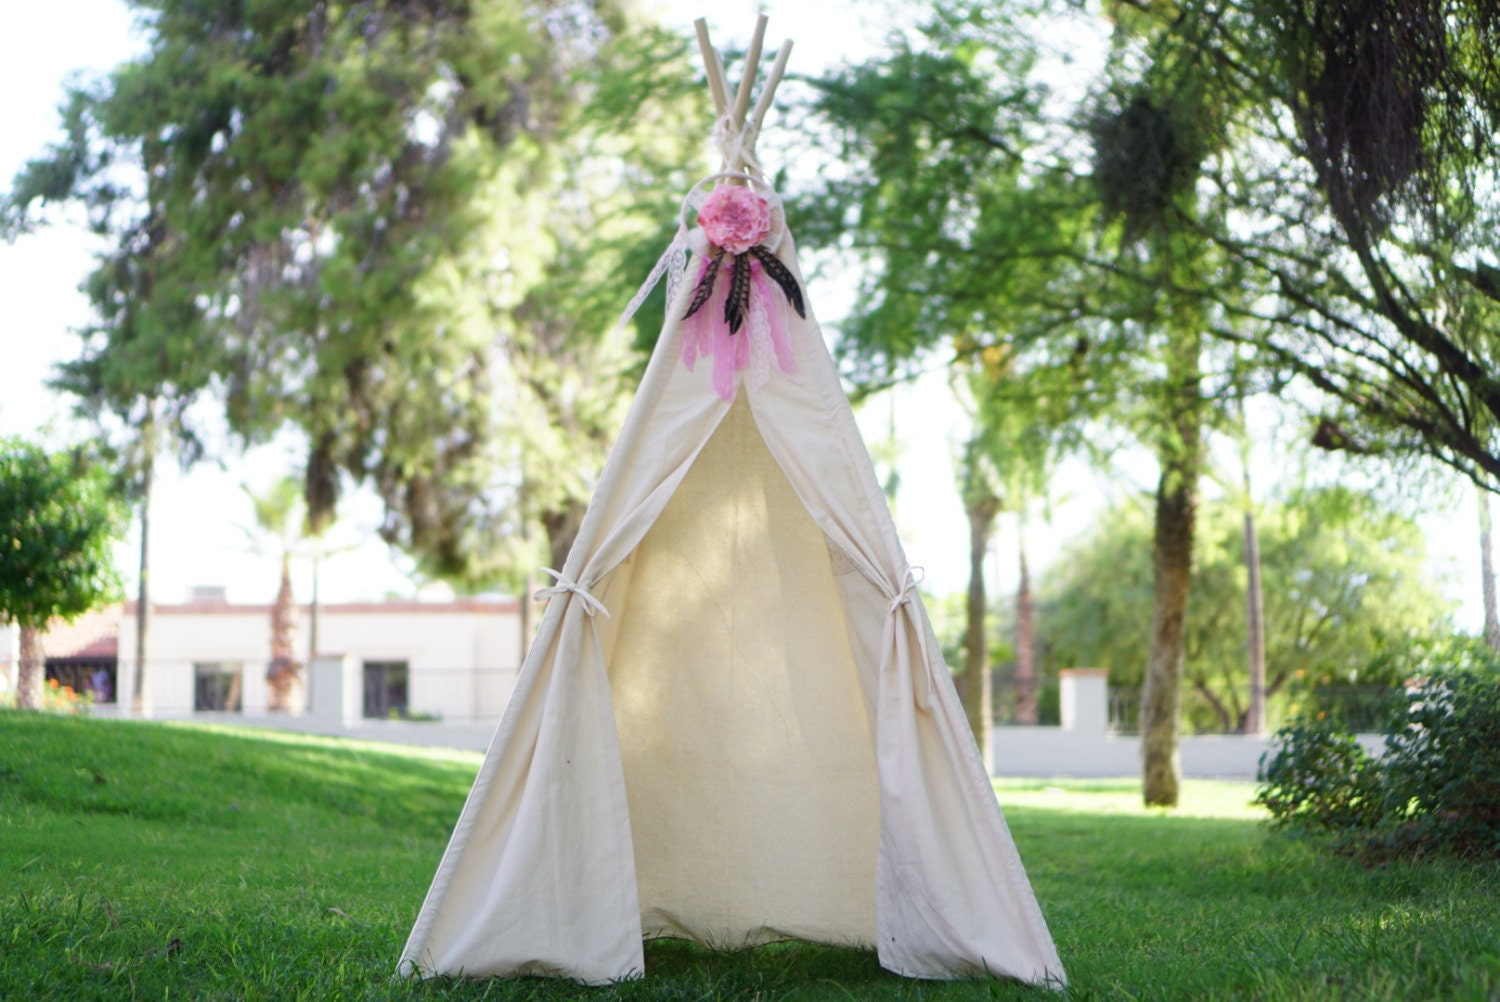 CANOPY 36u0027u0027 kids Teepee on unbleached canvas/ canvas Play tent / Tipi Wigwam or Playhouse with door Ties & CANOPY 36u0027u0027 kids Teepee on unbleached canvas/ canvas Play tent ...